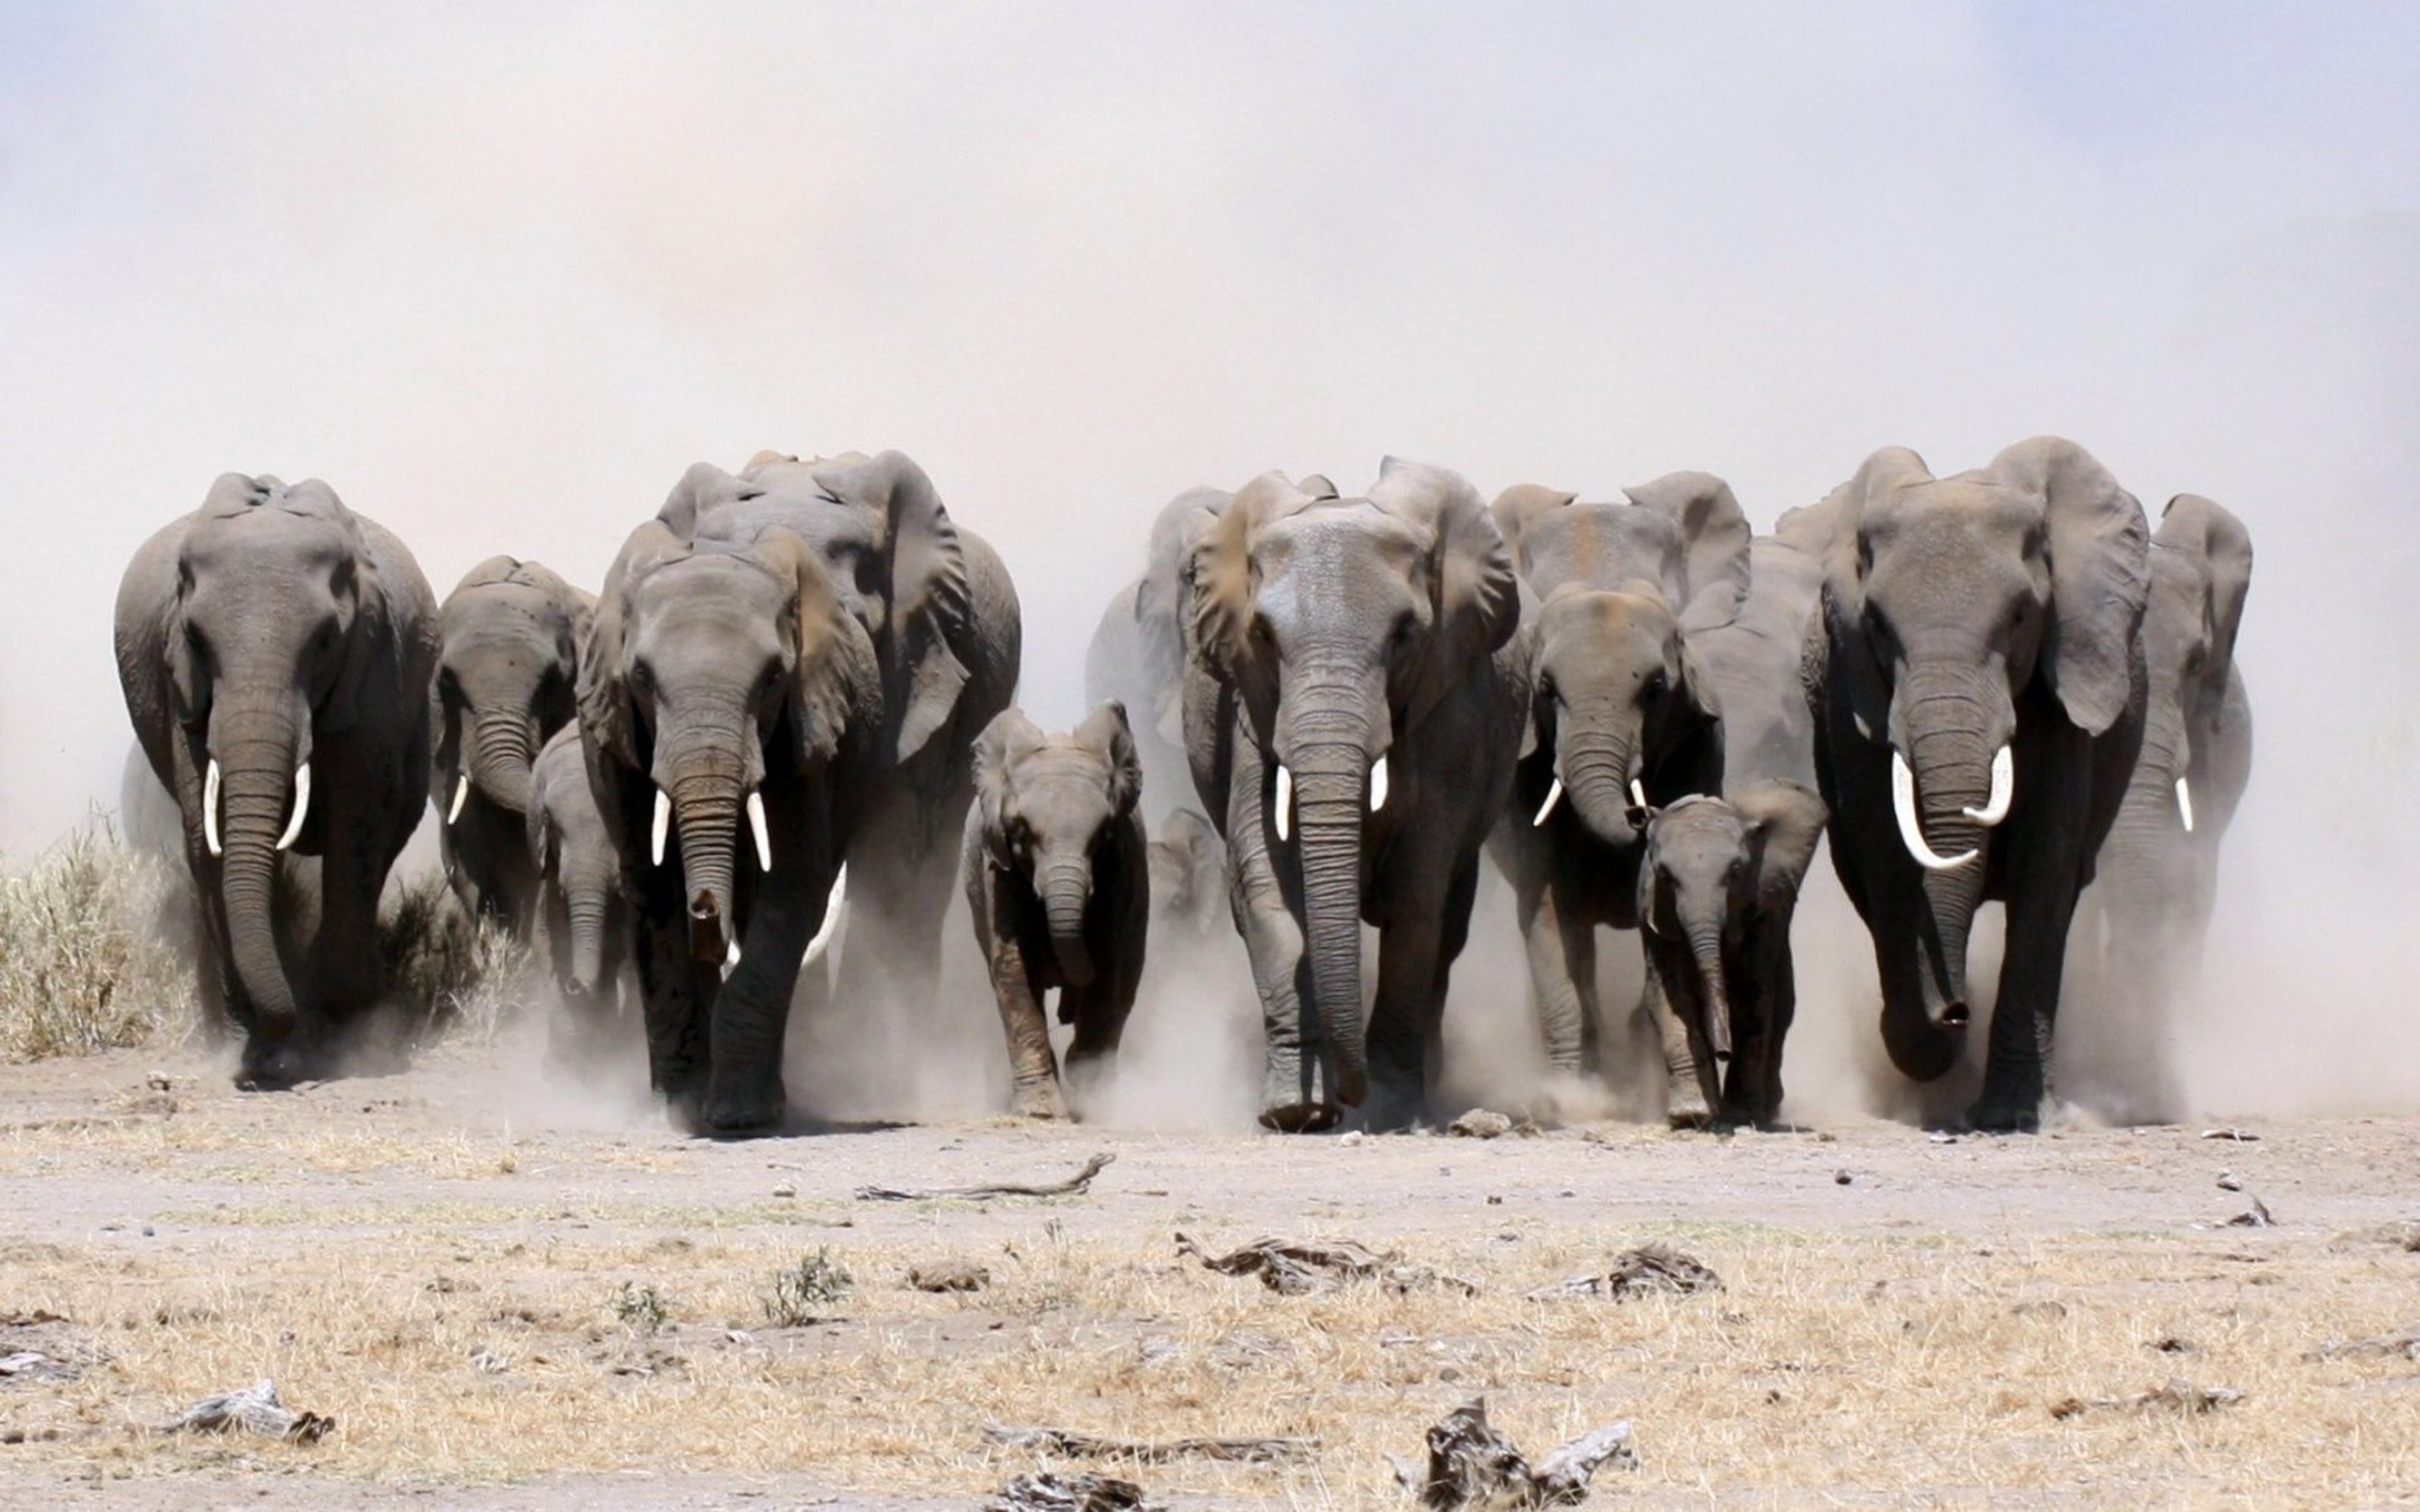 Chinese Dragon Wallpaper Hd A Herd Of African Elephants Running Dust Wallpaper For